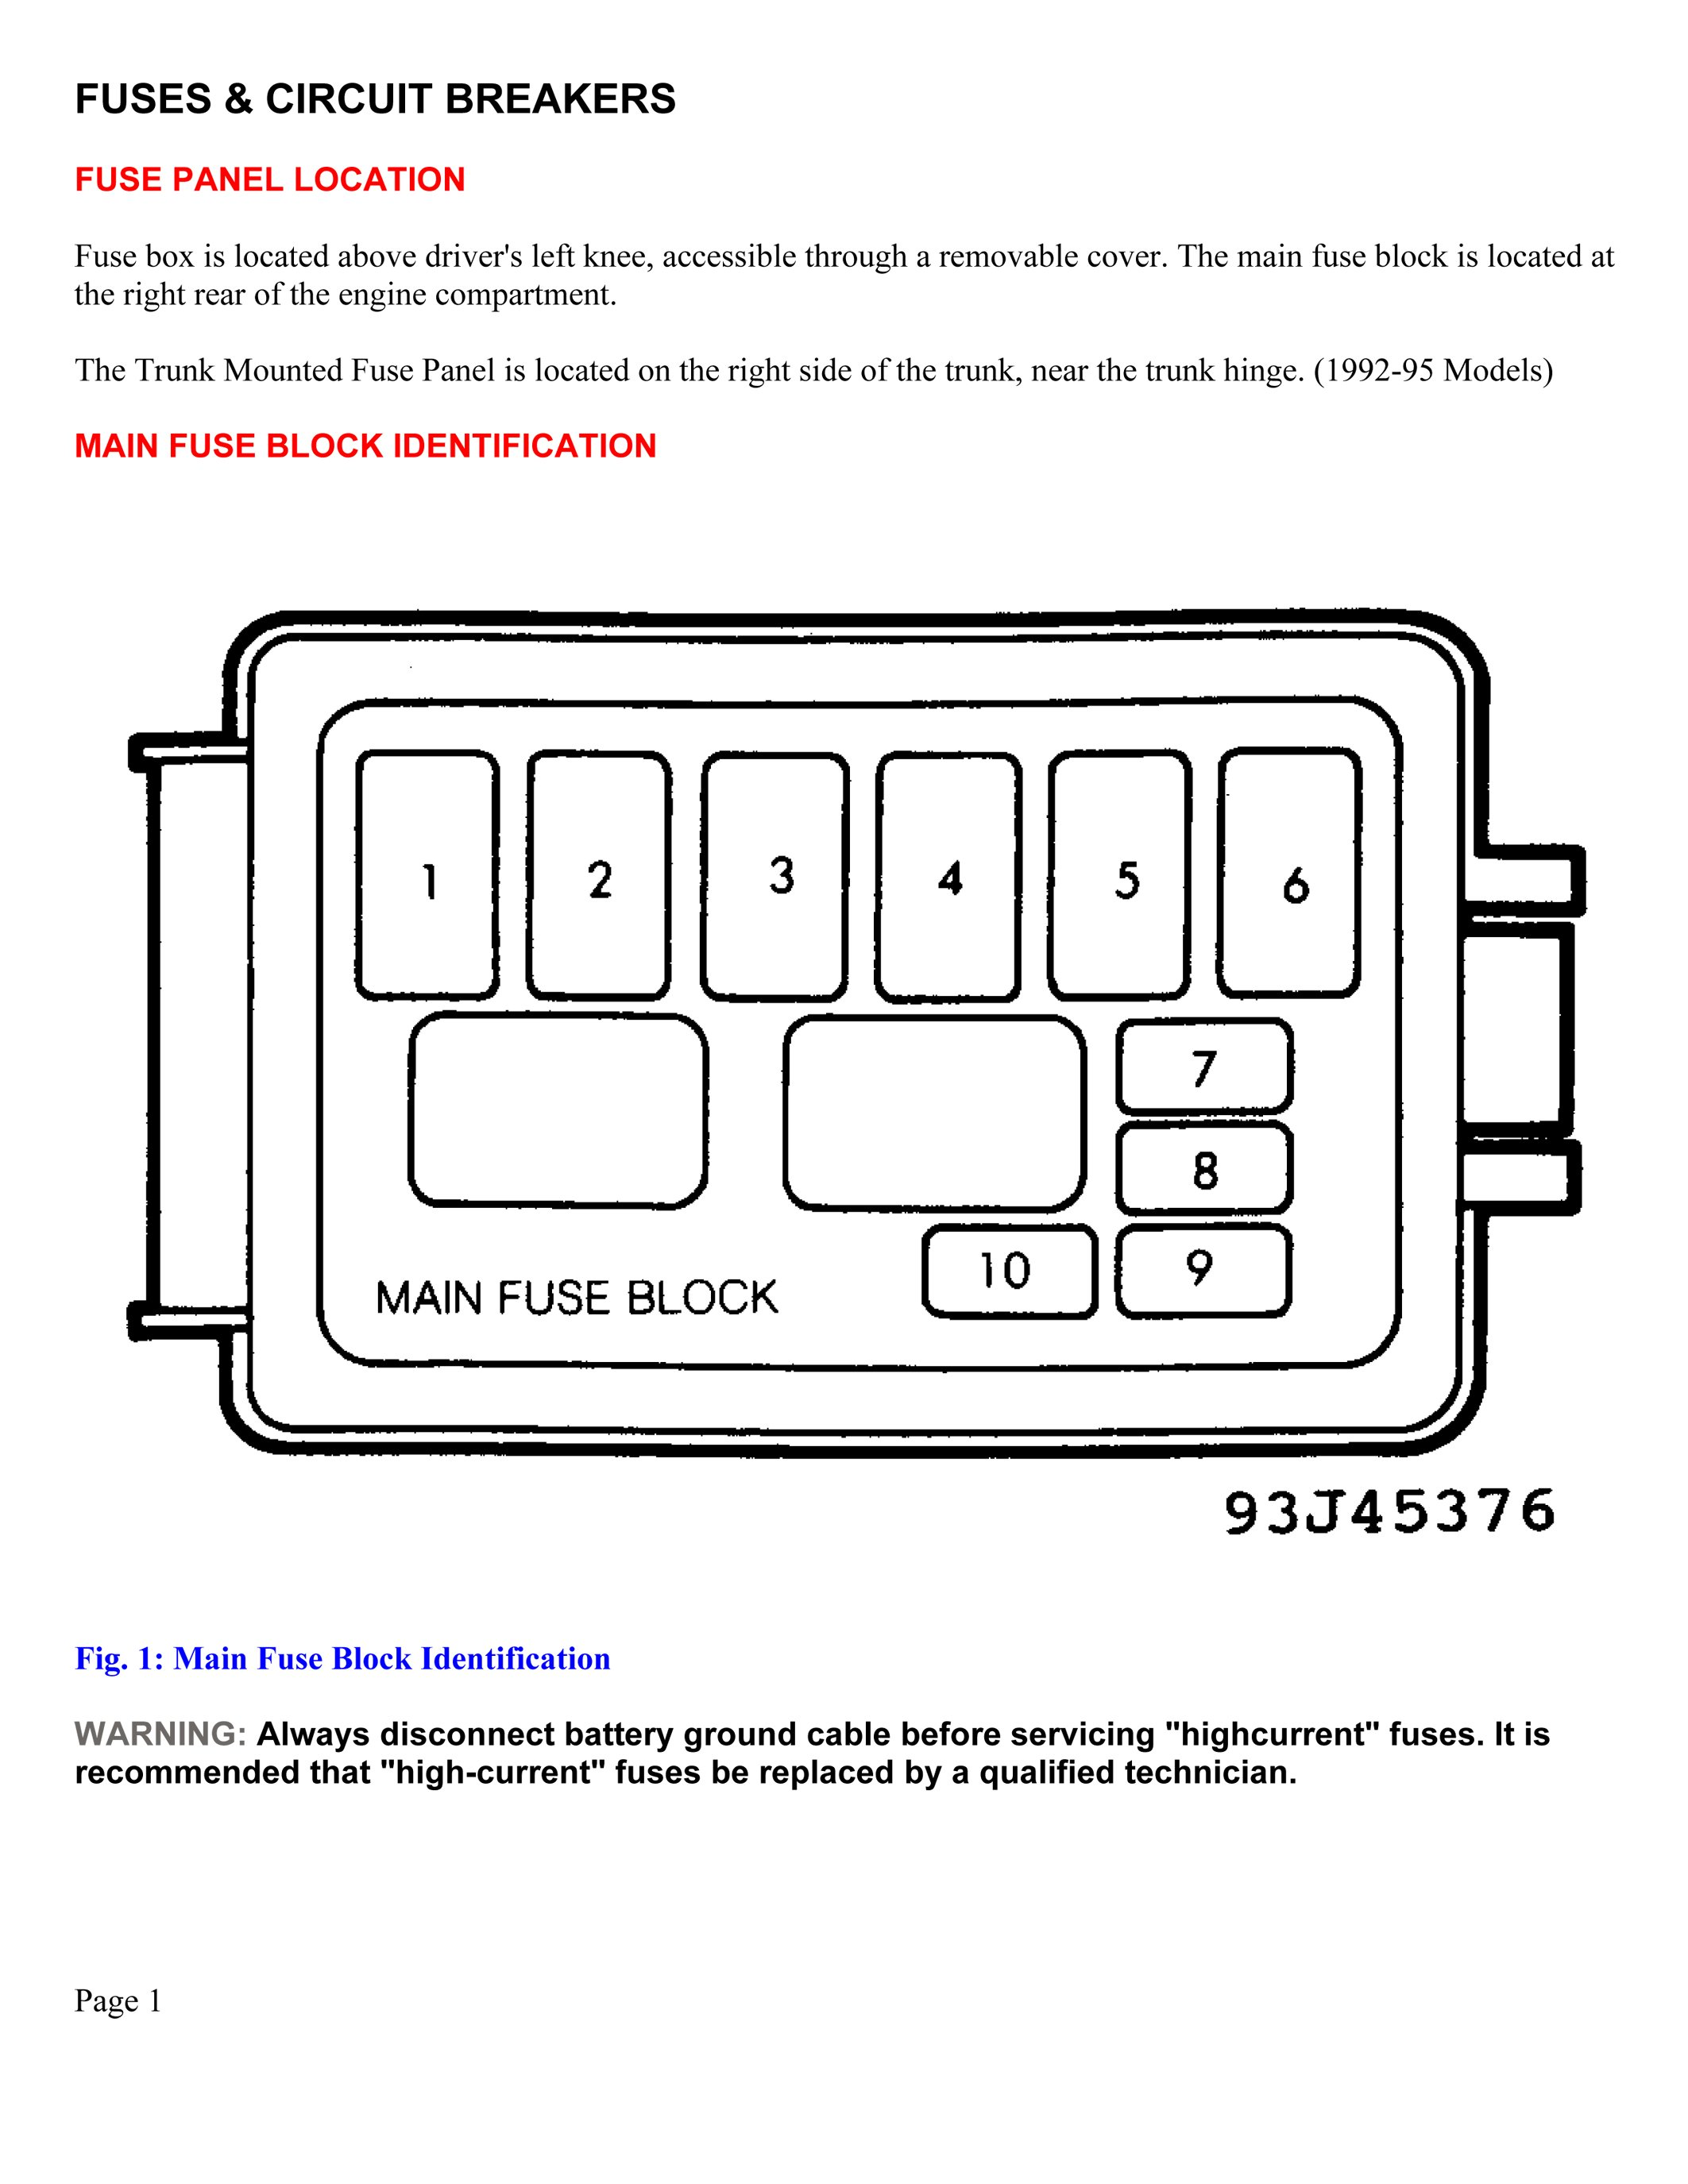 2010 03 20_044402_Document11 where can i get a legible fuse box lay out diagram for a 93 miata 2006 miata fuse box diagram at pacquiaovsvargaslive.co